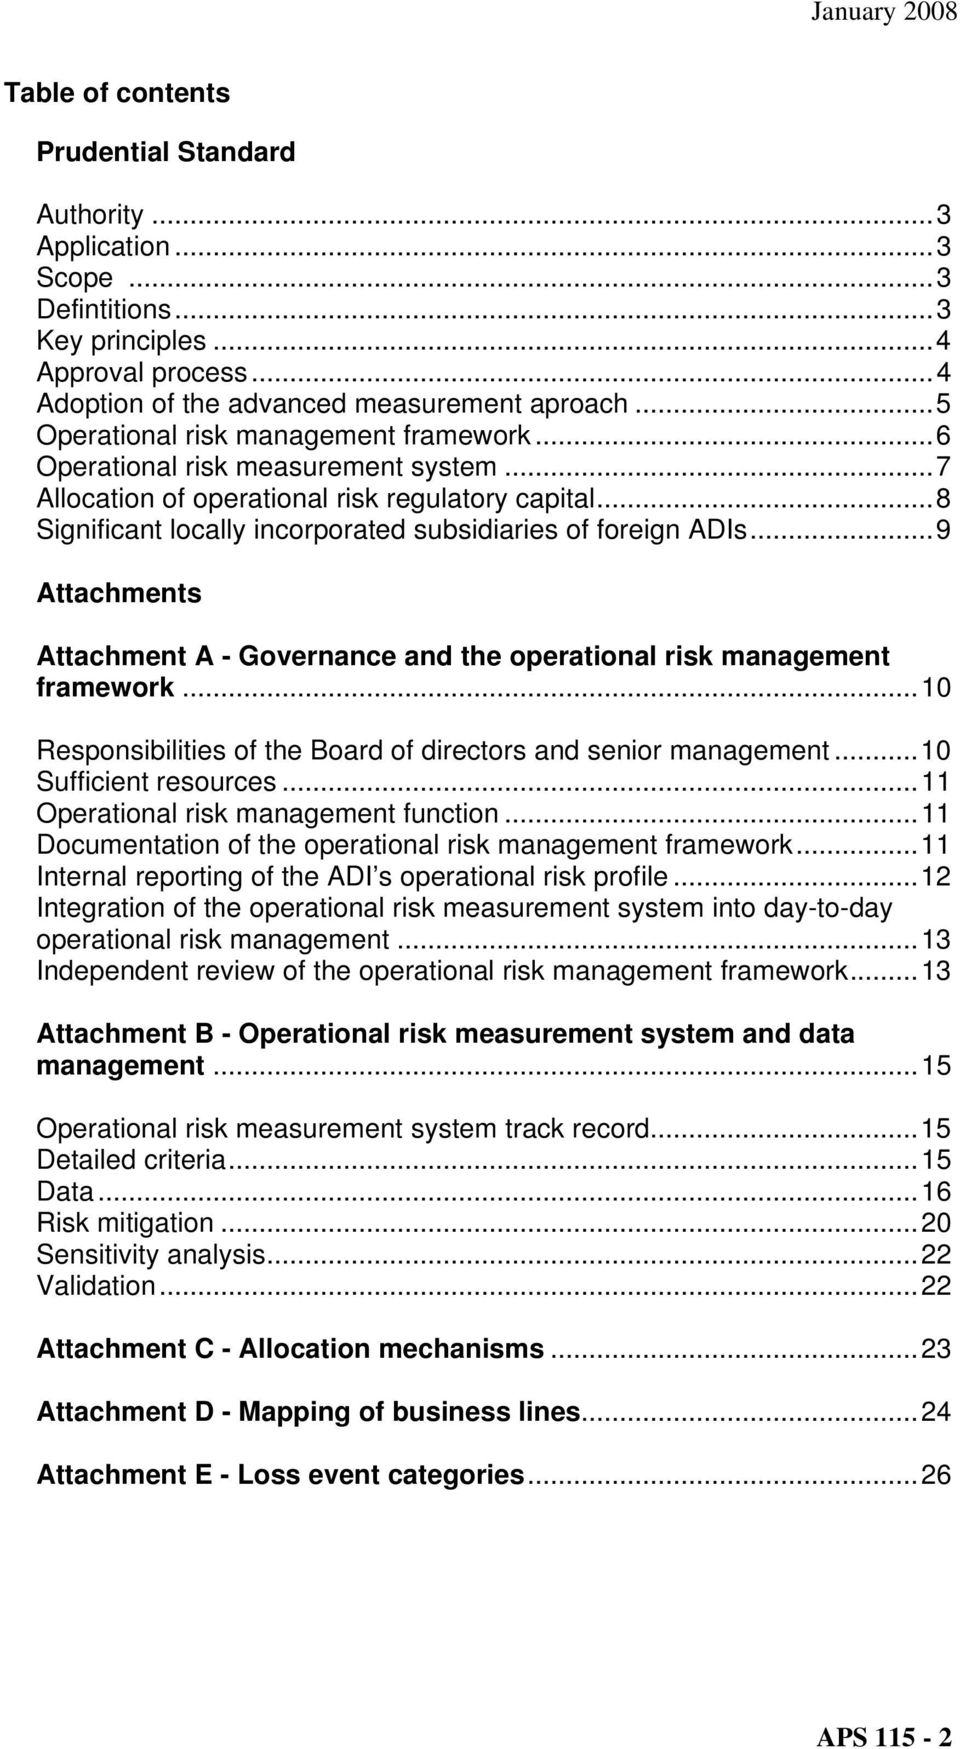 ..9 Attachments Attachment A - Governance and the operational risk management framework...10 Responsibilities of the Board of directors and senior management...10 Sufficient resources.